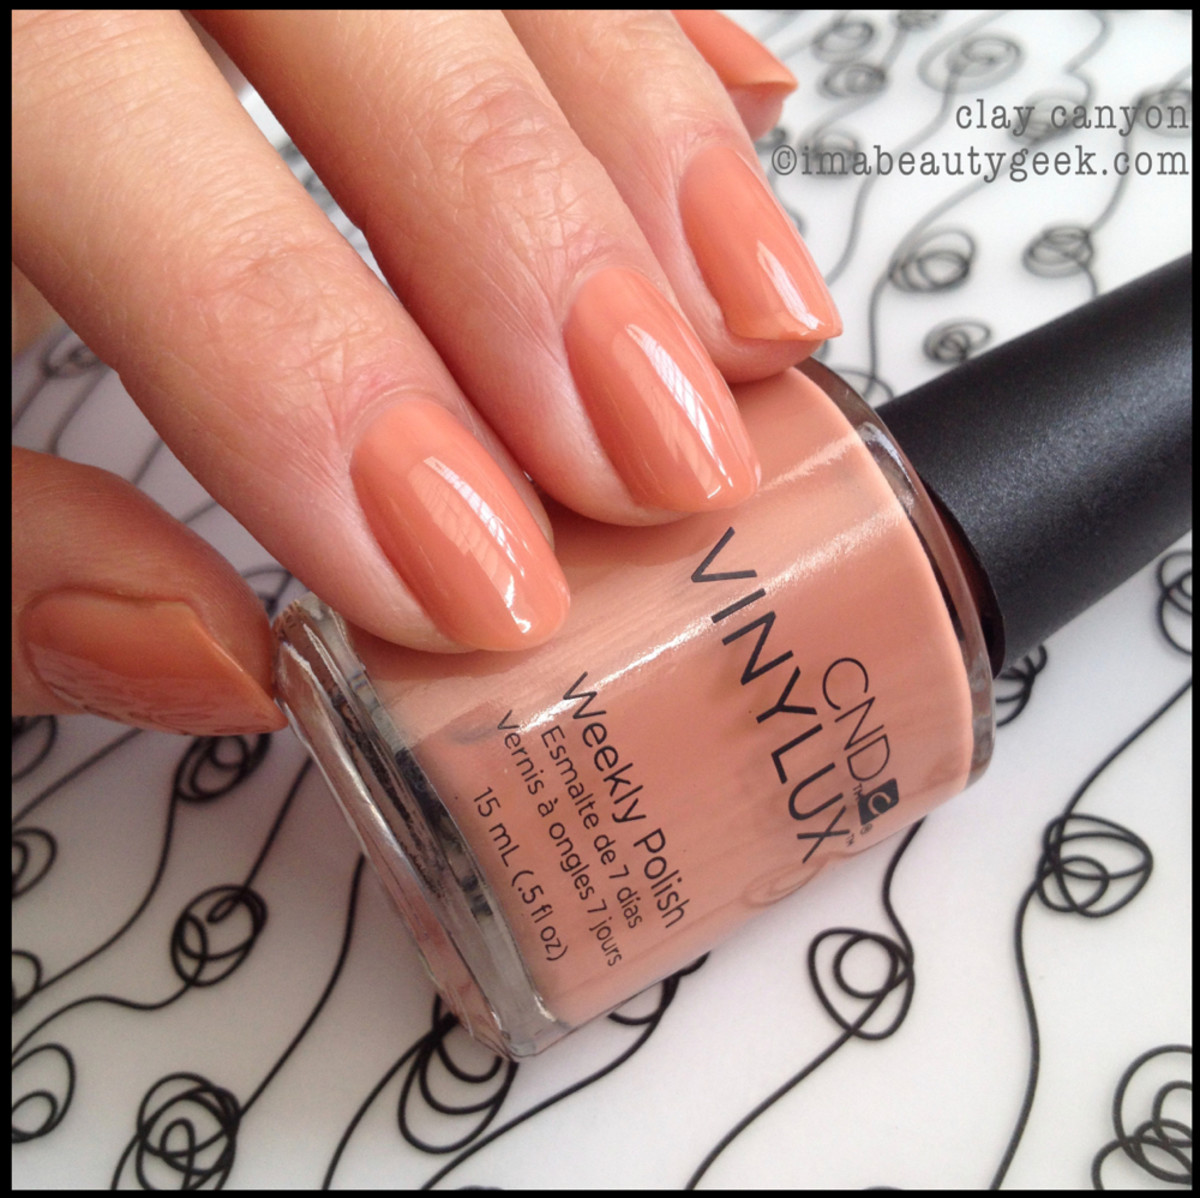 CND Vinylux Clay Canyon_CND Vinylux Spring 2014